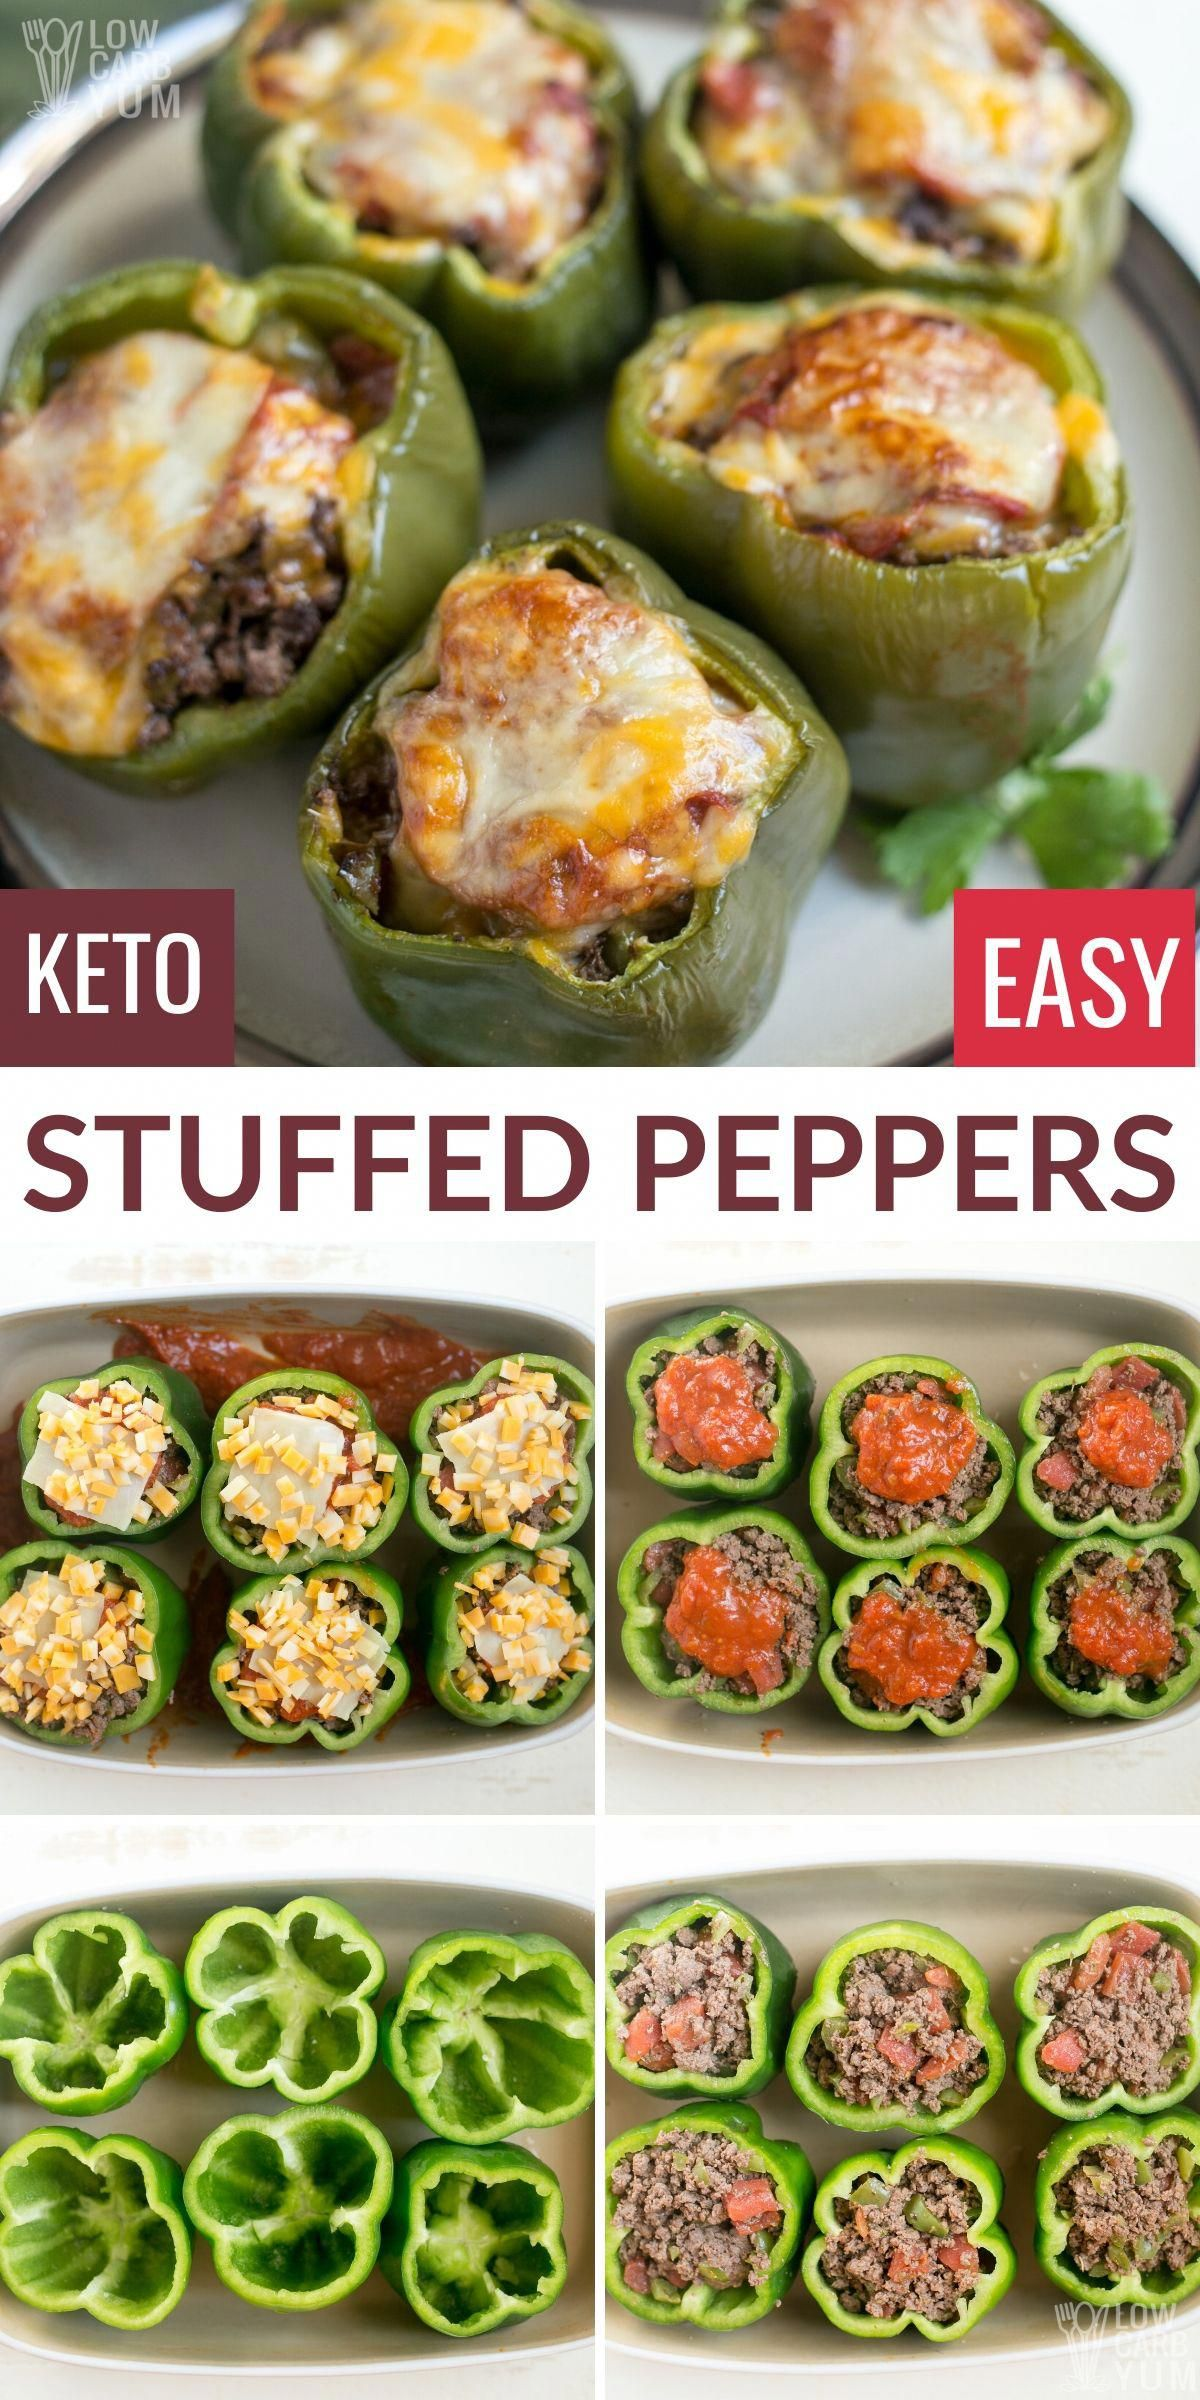 Keto Low Carb Stuffed Peppers With Beef In 2020 Low Carb Stuffed Peppers Keto Recipes Easy Stuffed Peppers